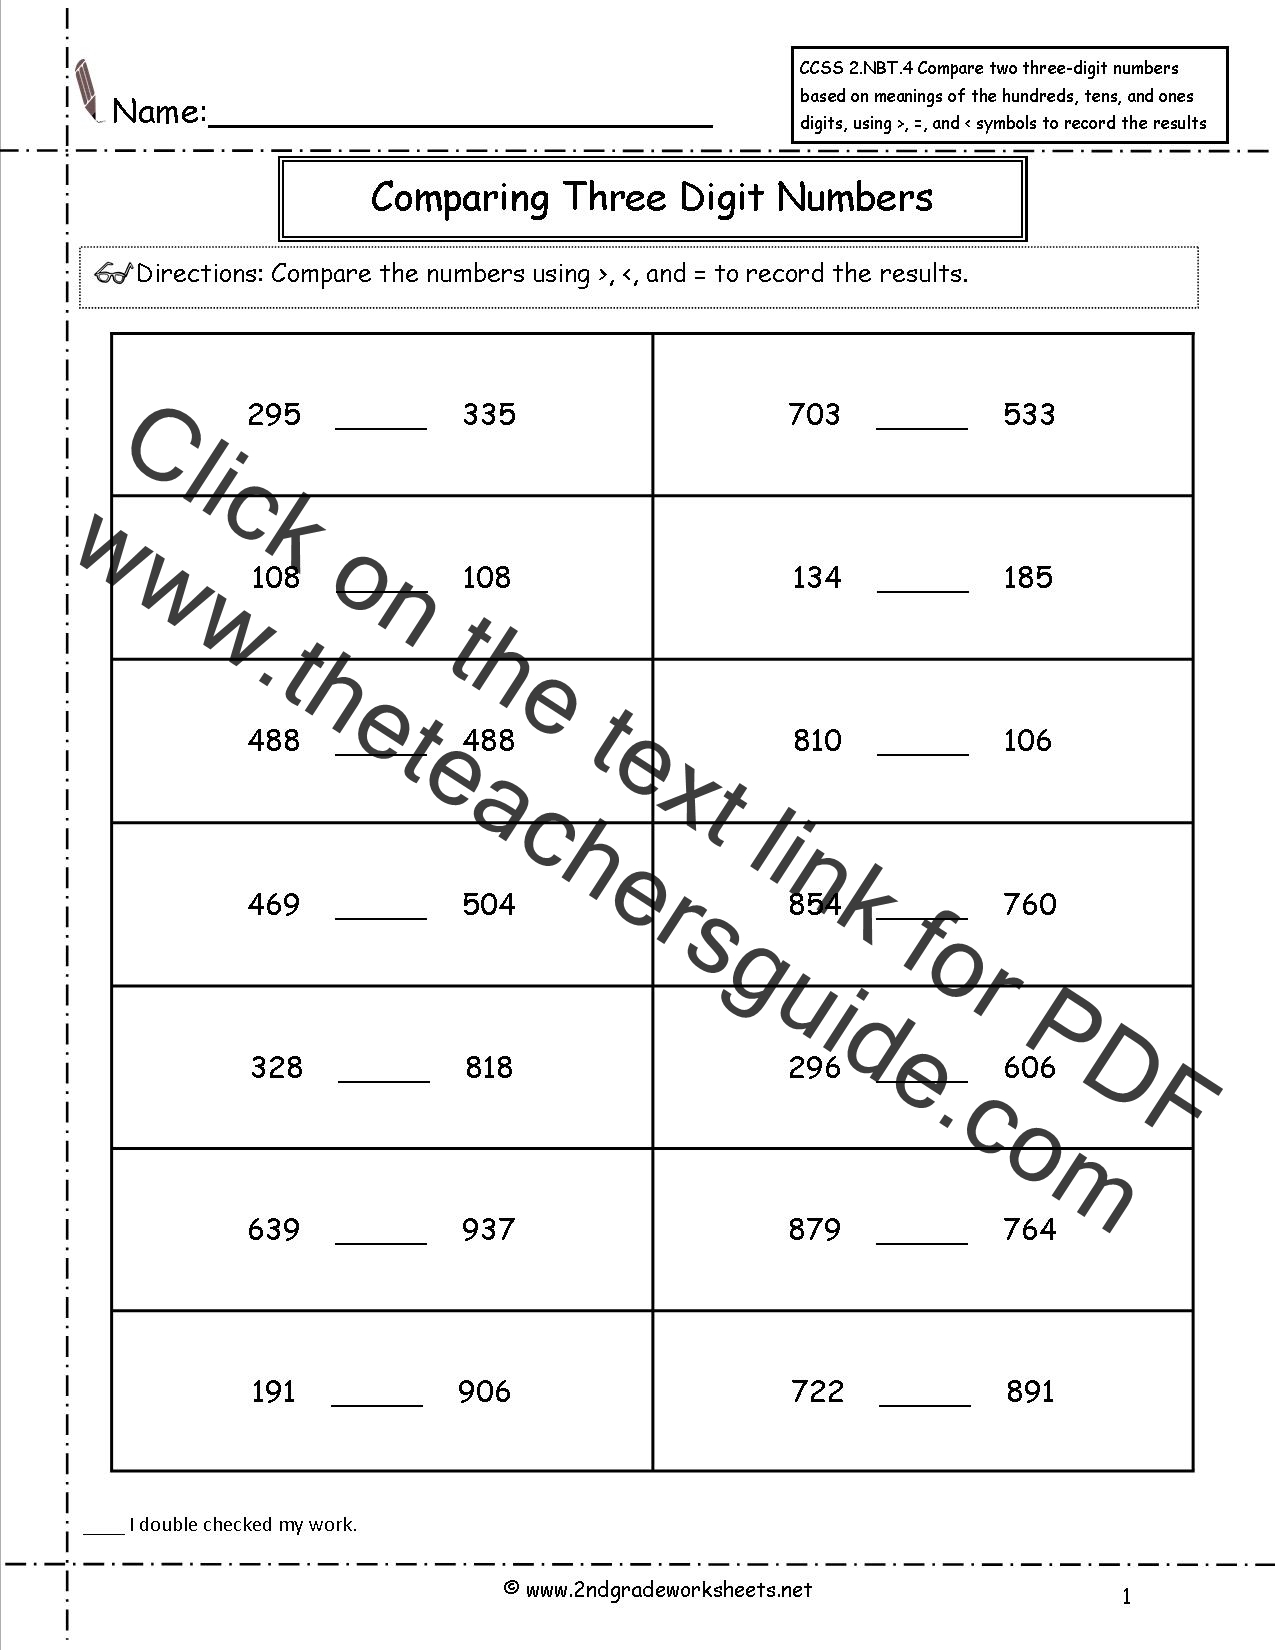 worksheet Common Core Grade 3 Math Worksheets ccss 2 nbt 4 worksheets comparing three digit numbers compare 3 5 6 7 8 9 10 common core